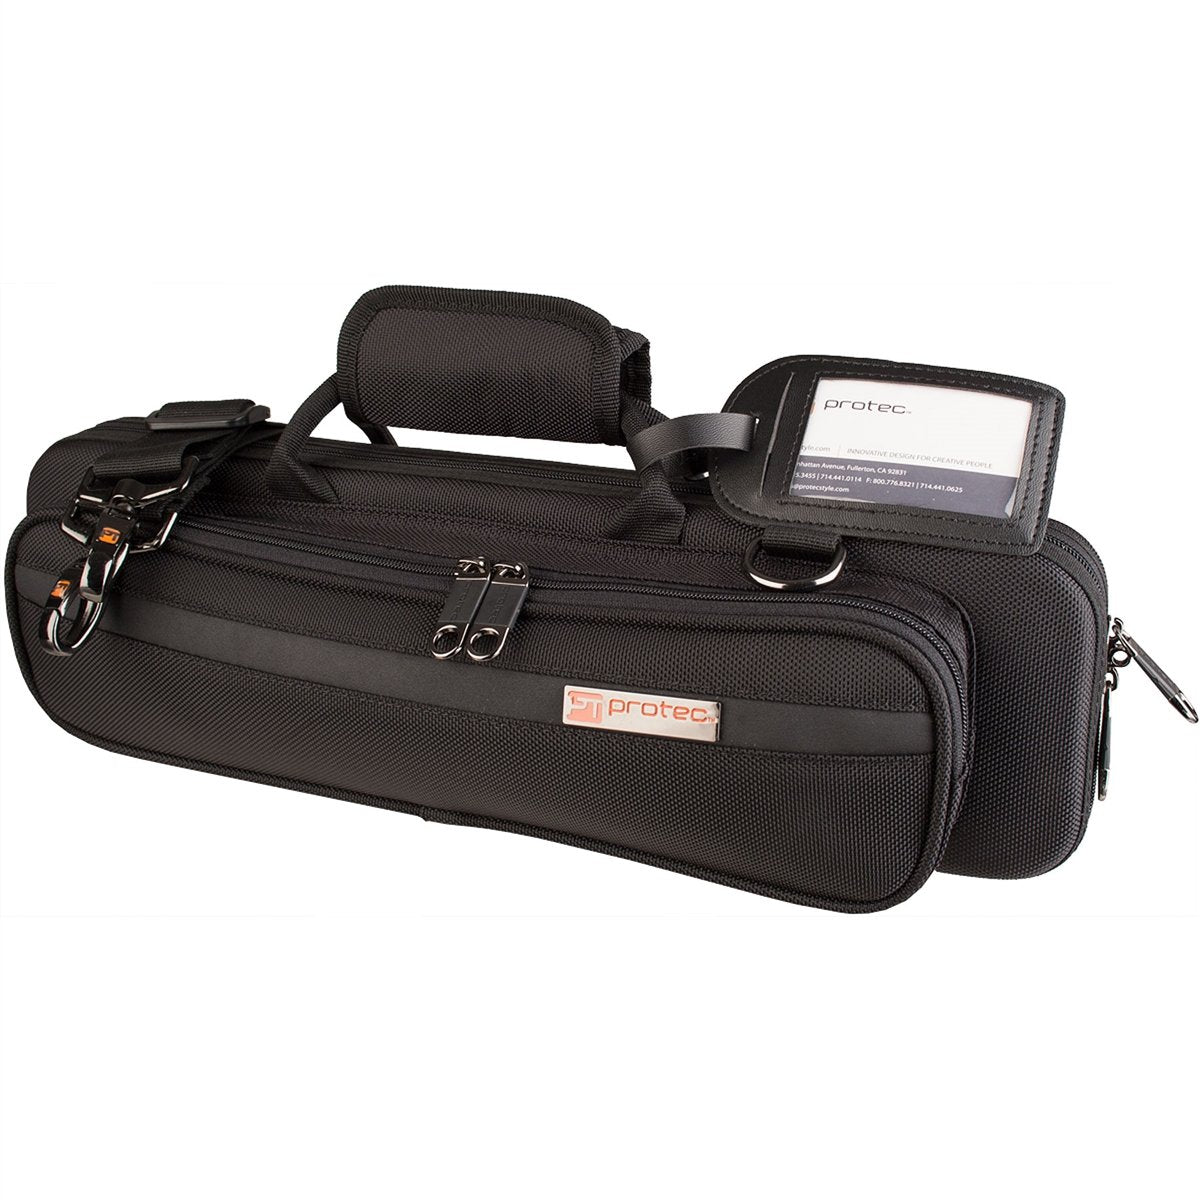 Protec - Flute PRO PAC Case (Slimline)-Accessories-Protec-Black-Music Elements